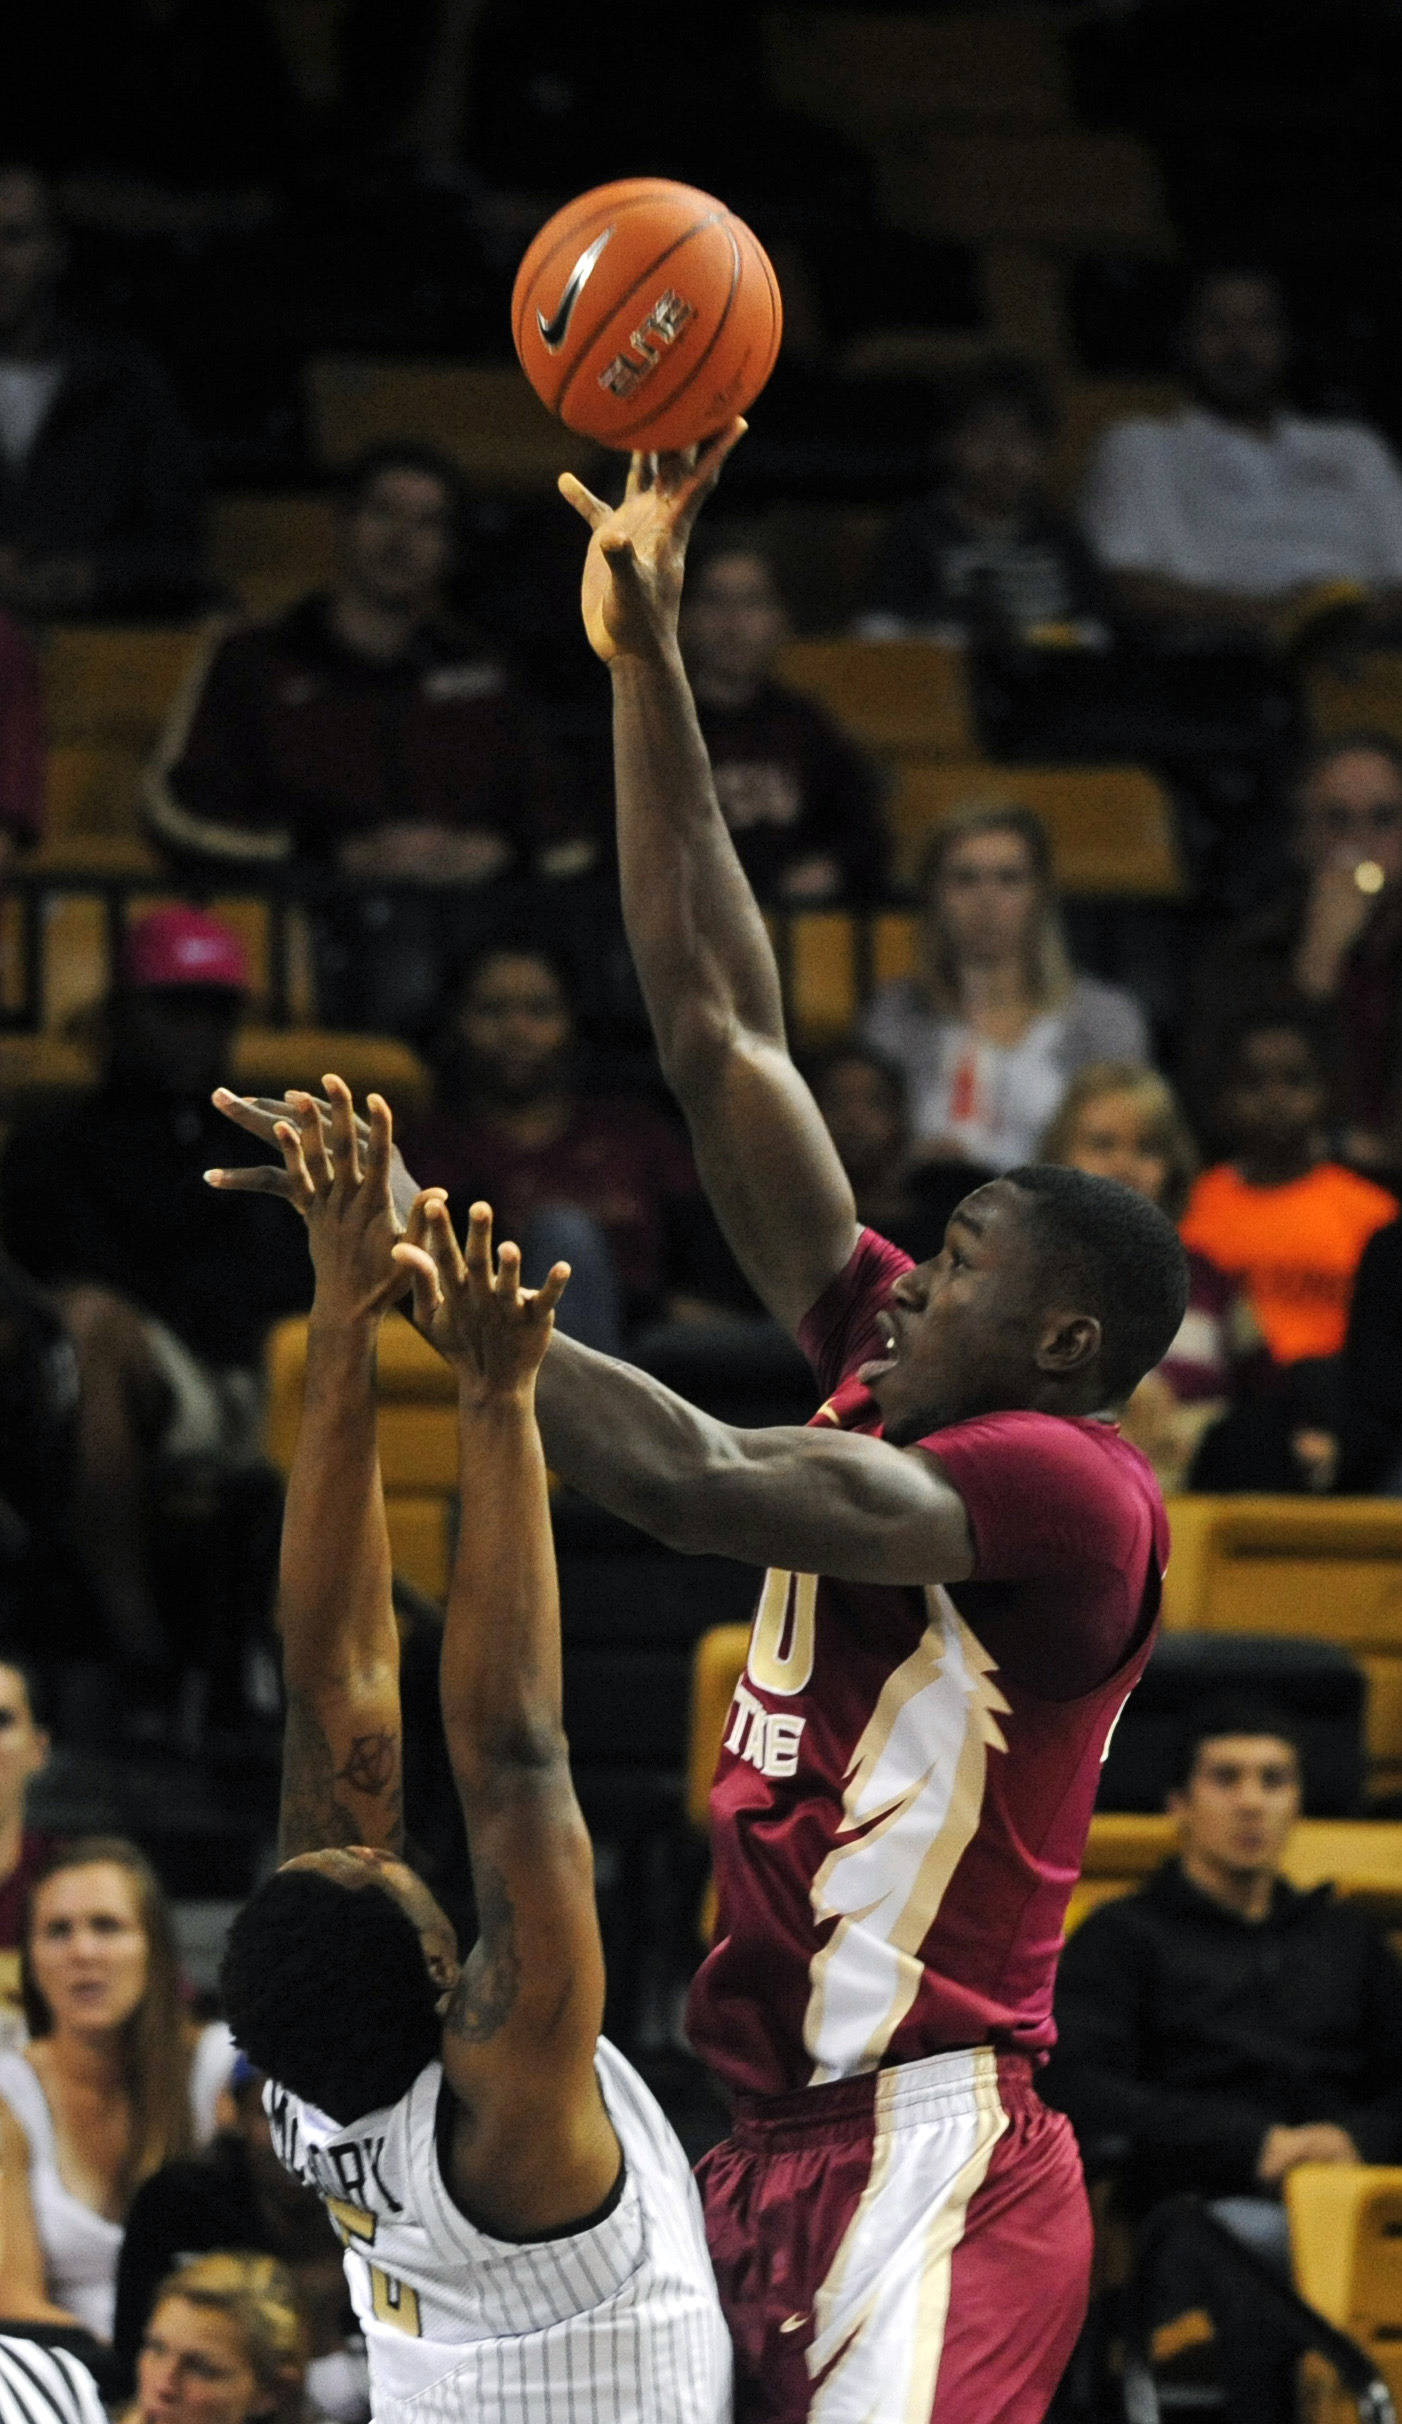 Center Michael Ojo (50) lays up a shot overtop Knights forward Eugene McCrory (5). David Manning-USA TODAY Sports